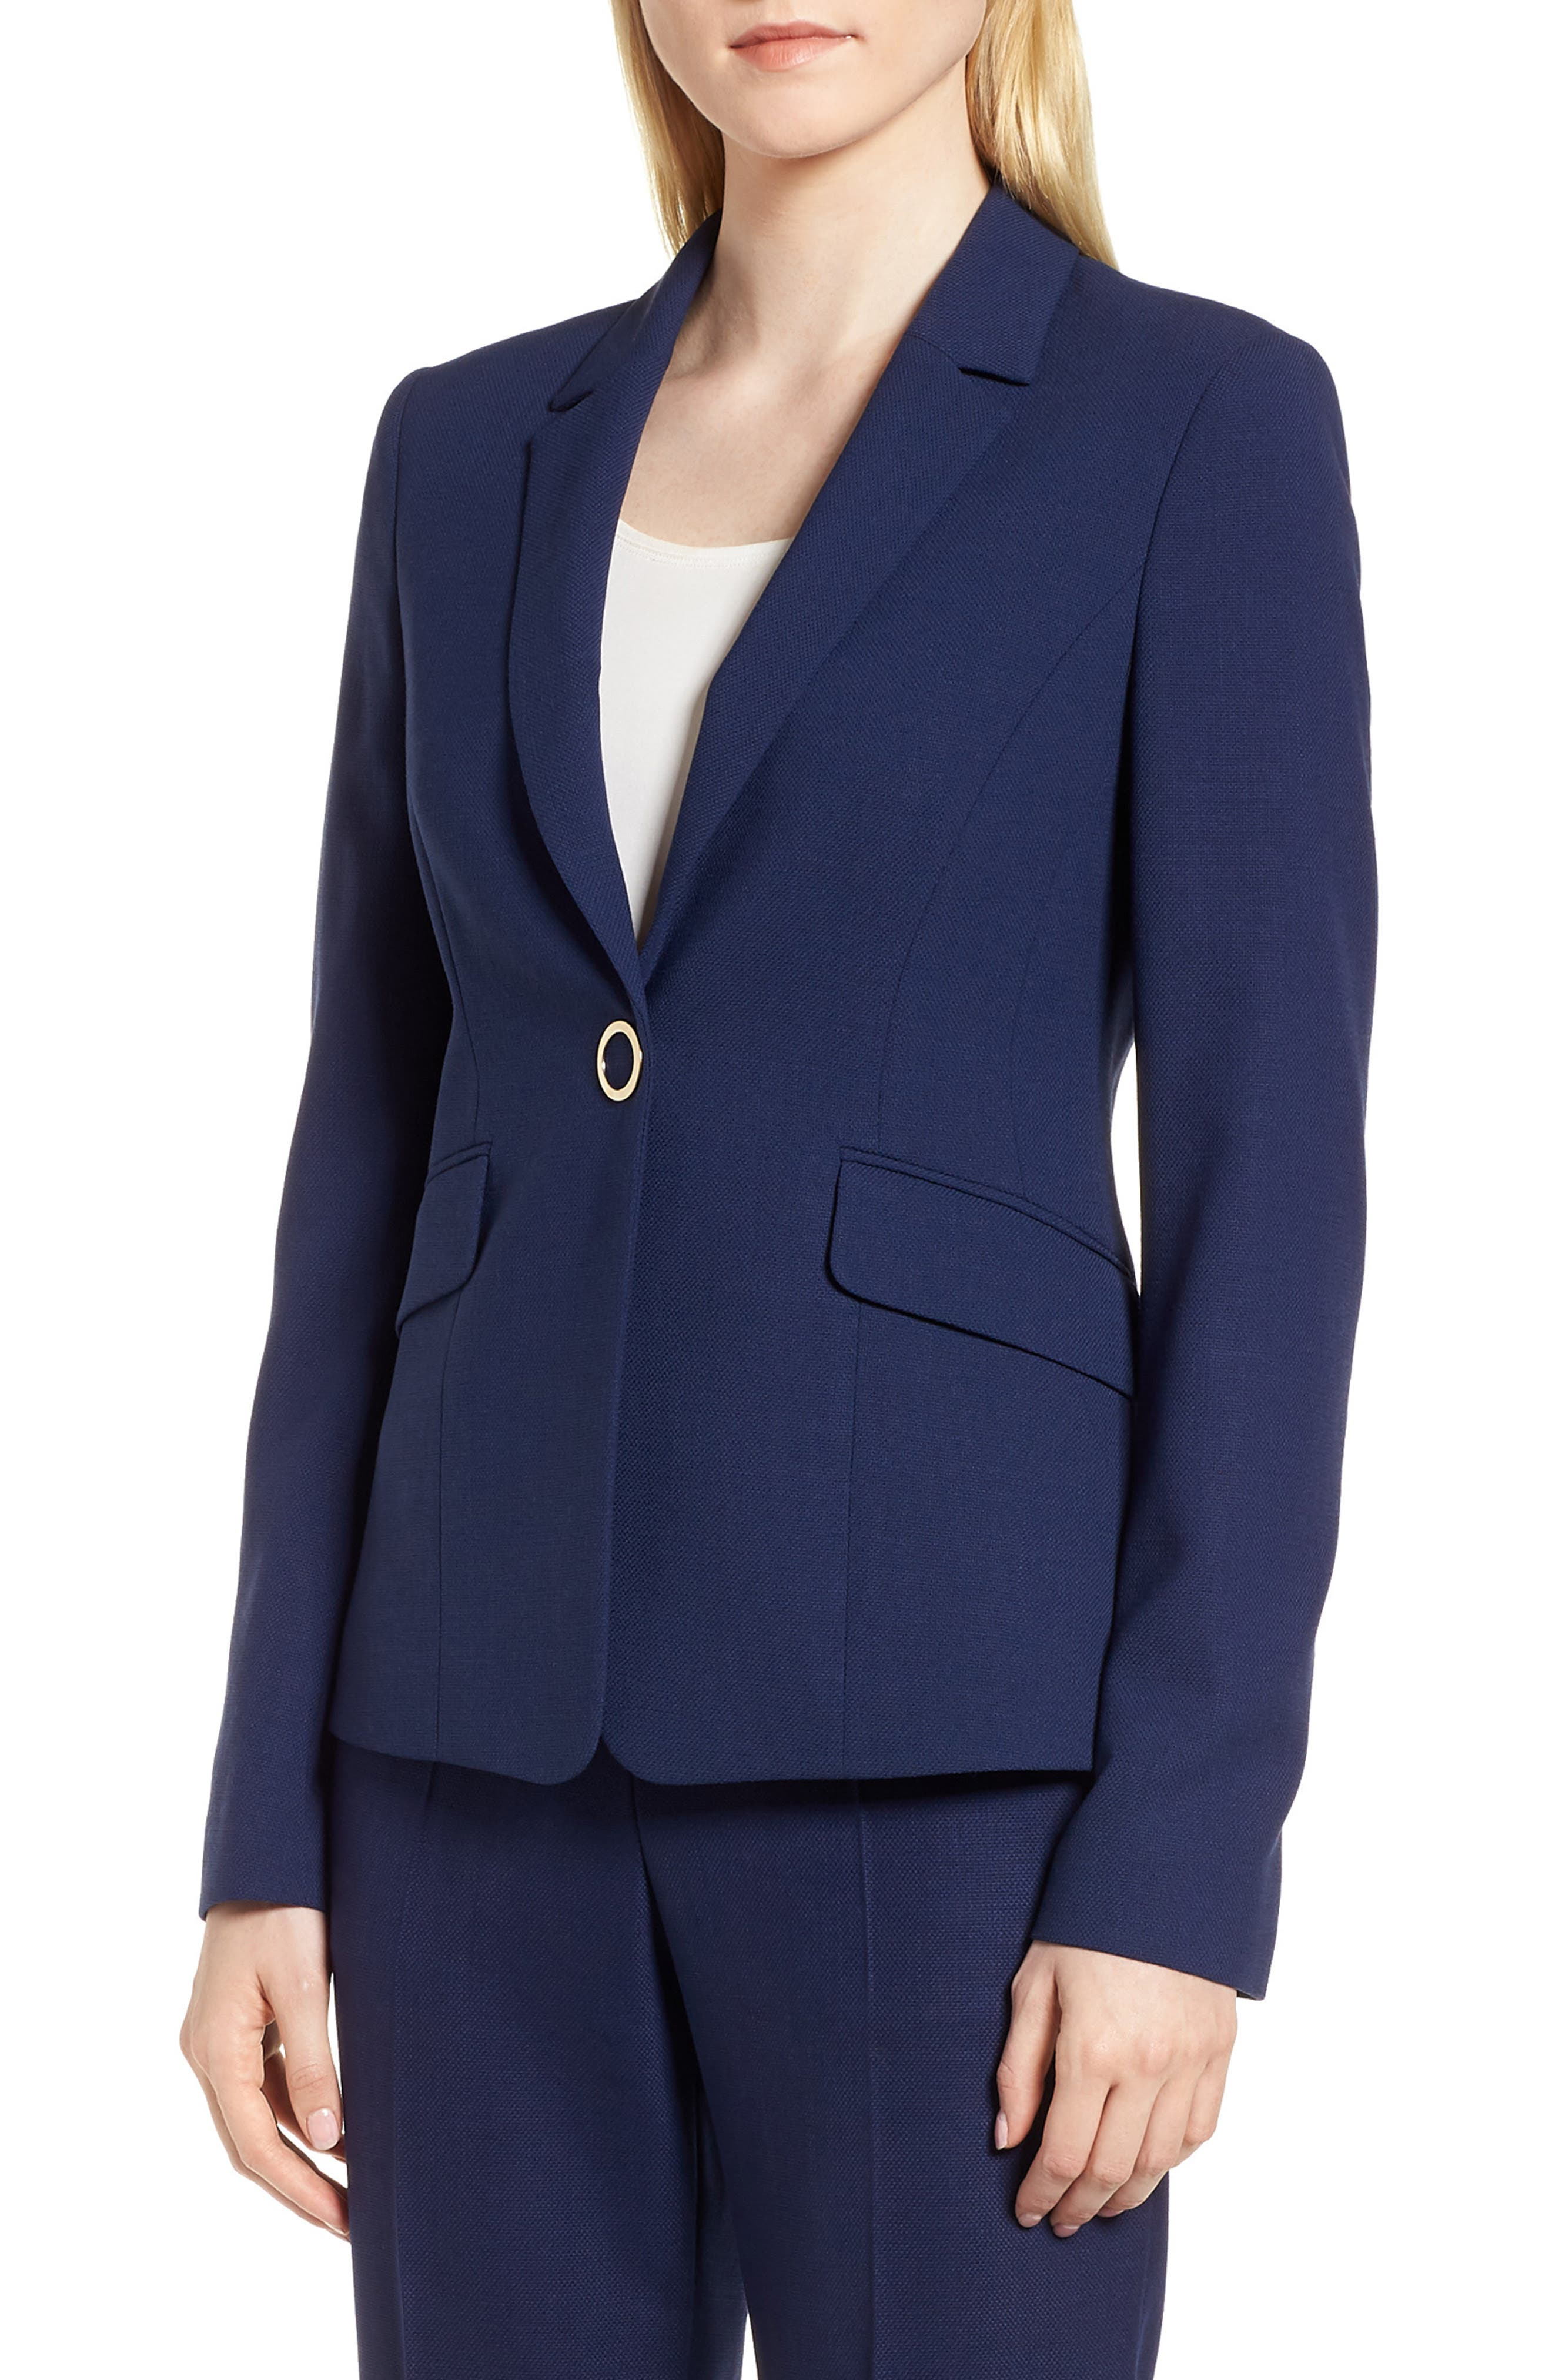 Jibalena Textured Stretch Wool Suit Jacket,                         Main,                         color, Nautical